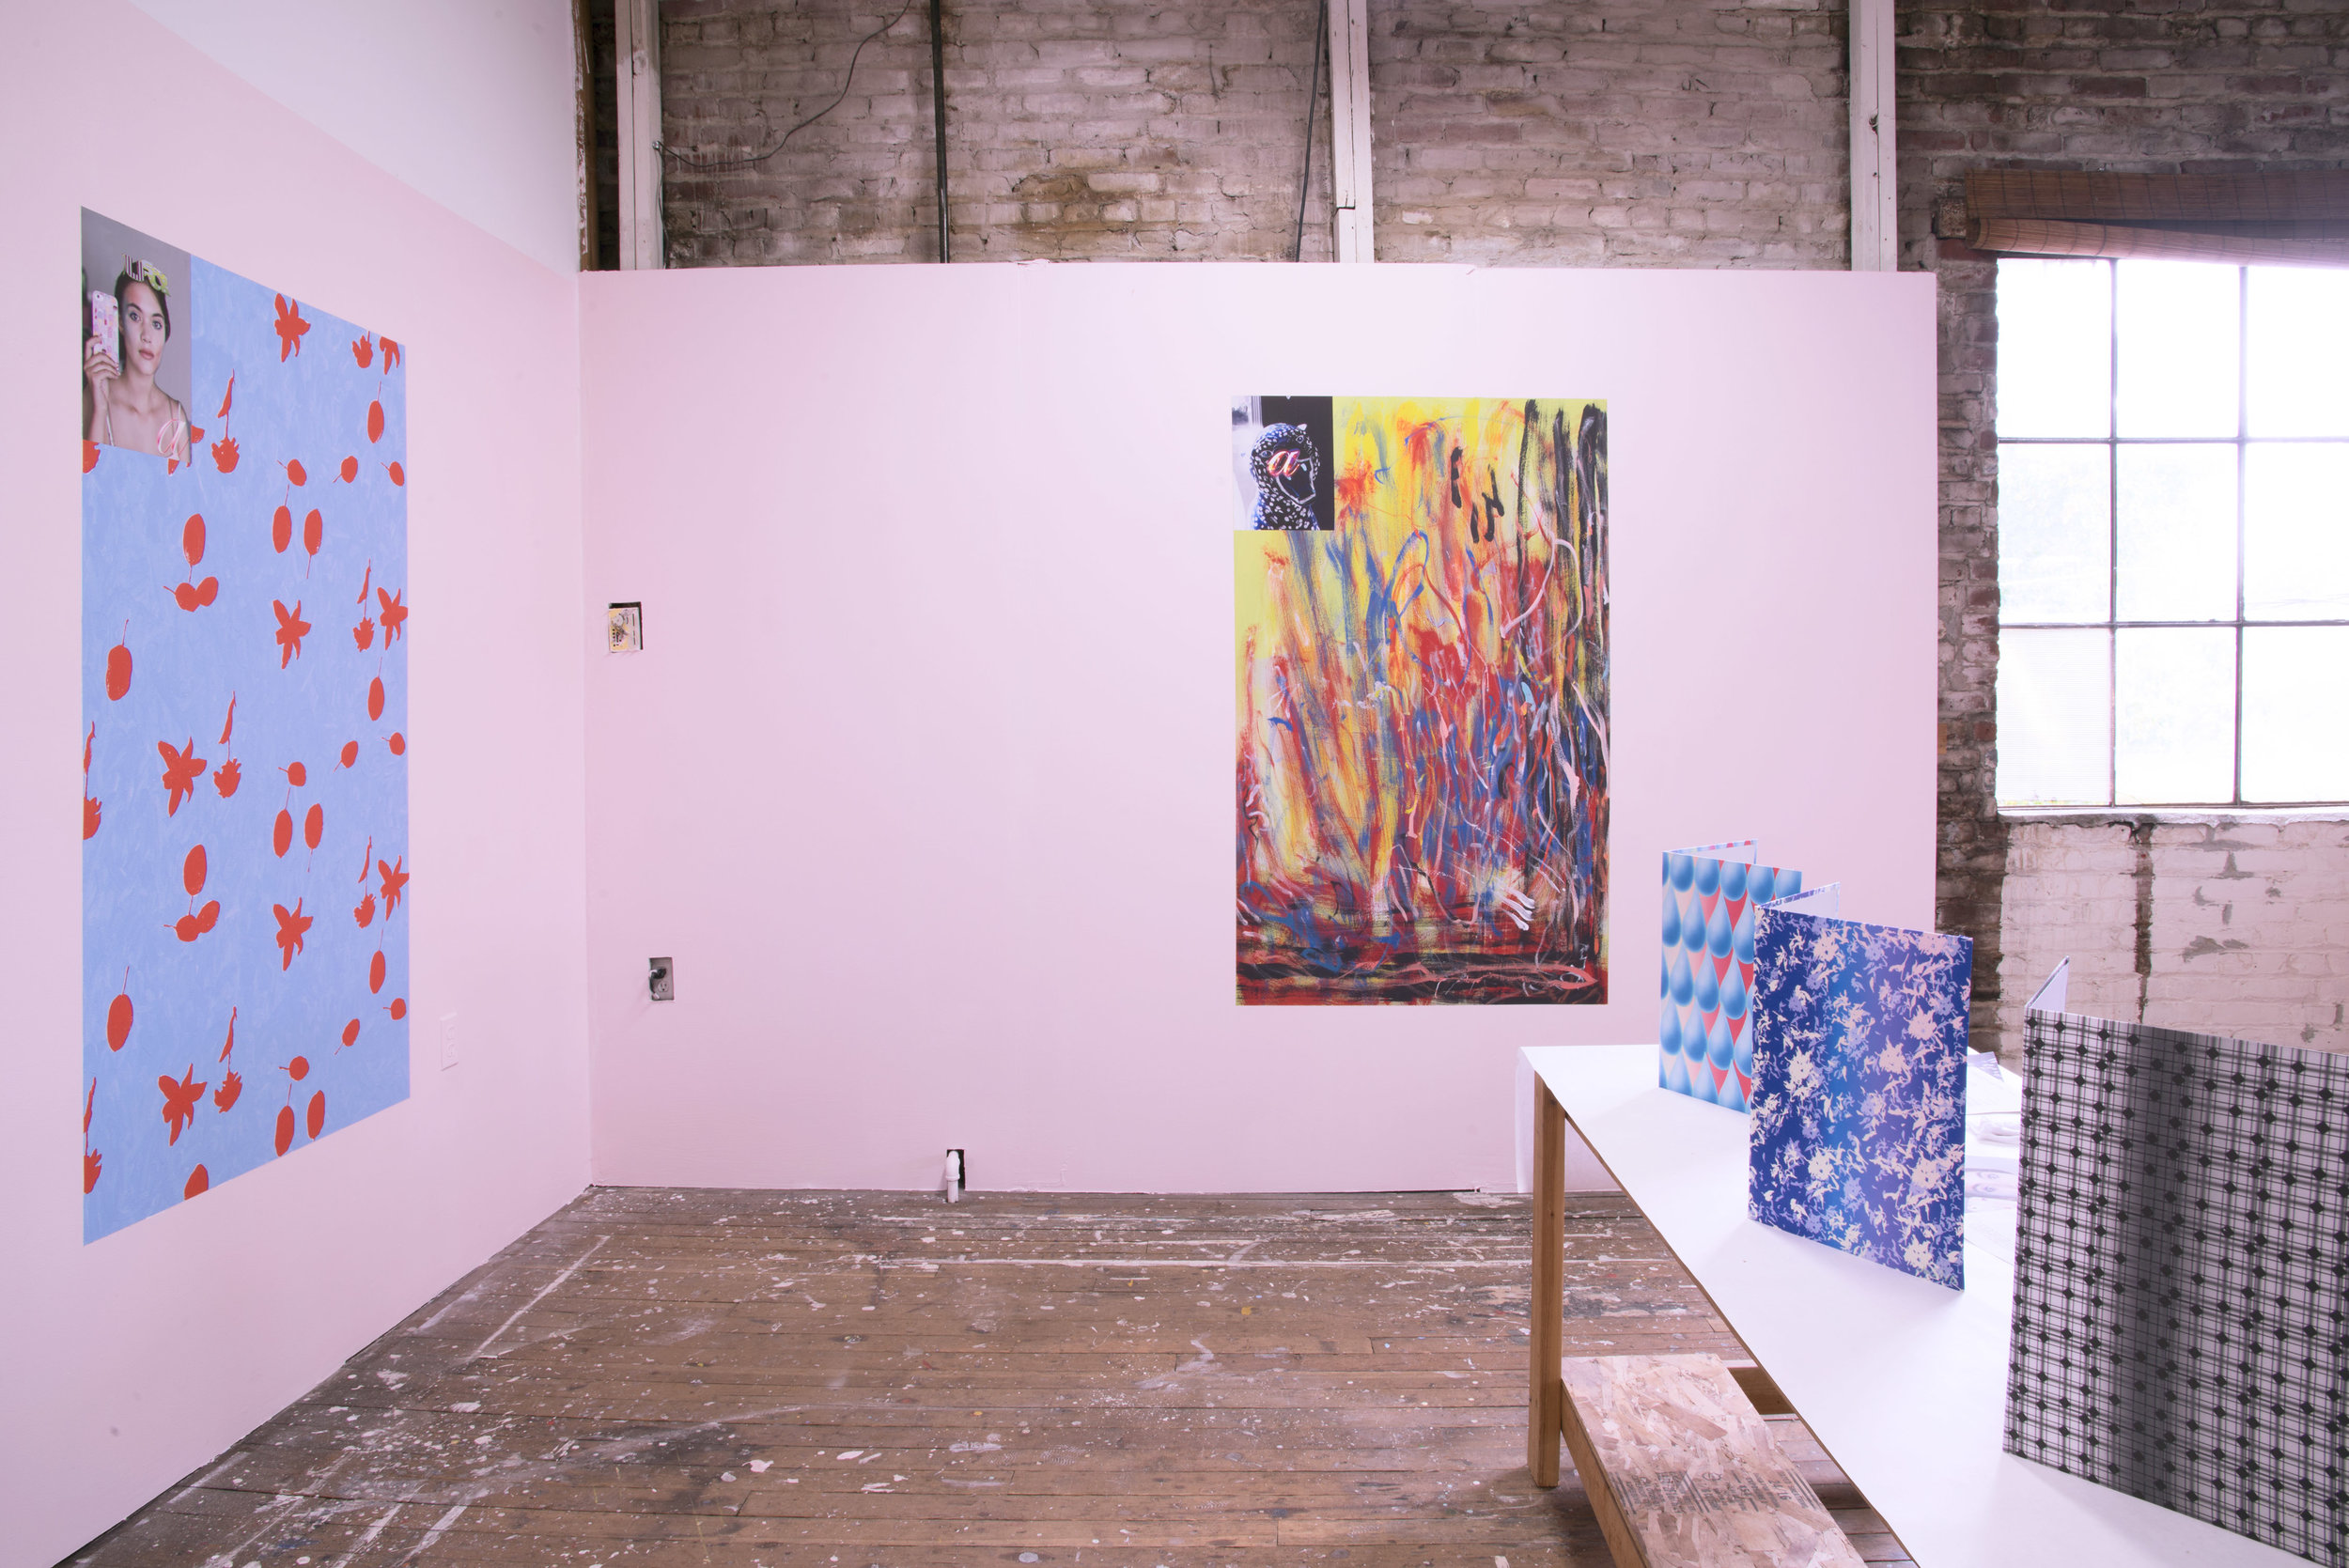 Carter Mull, ;a)5516, \a)142, /a)13&3, installation view